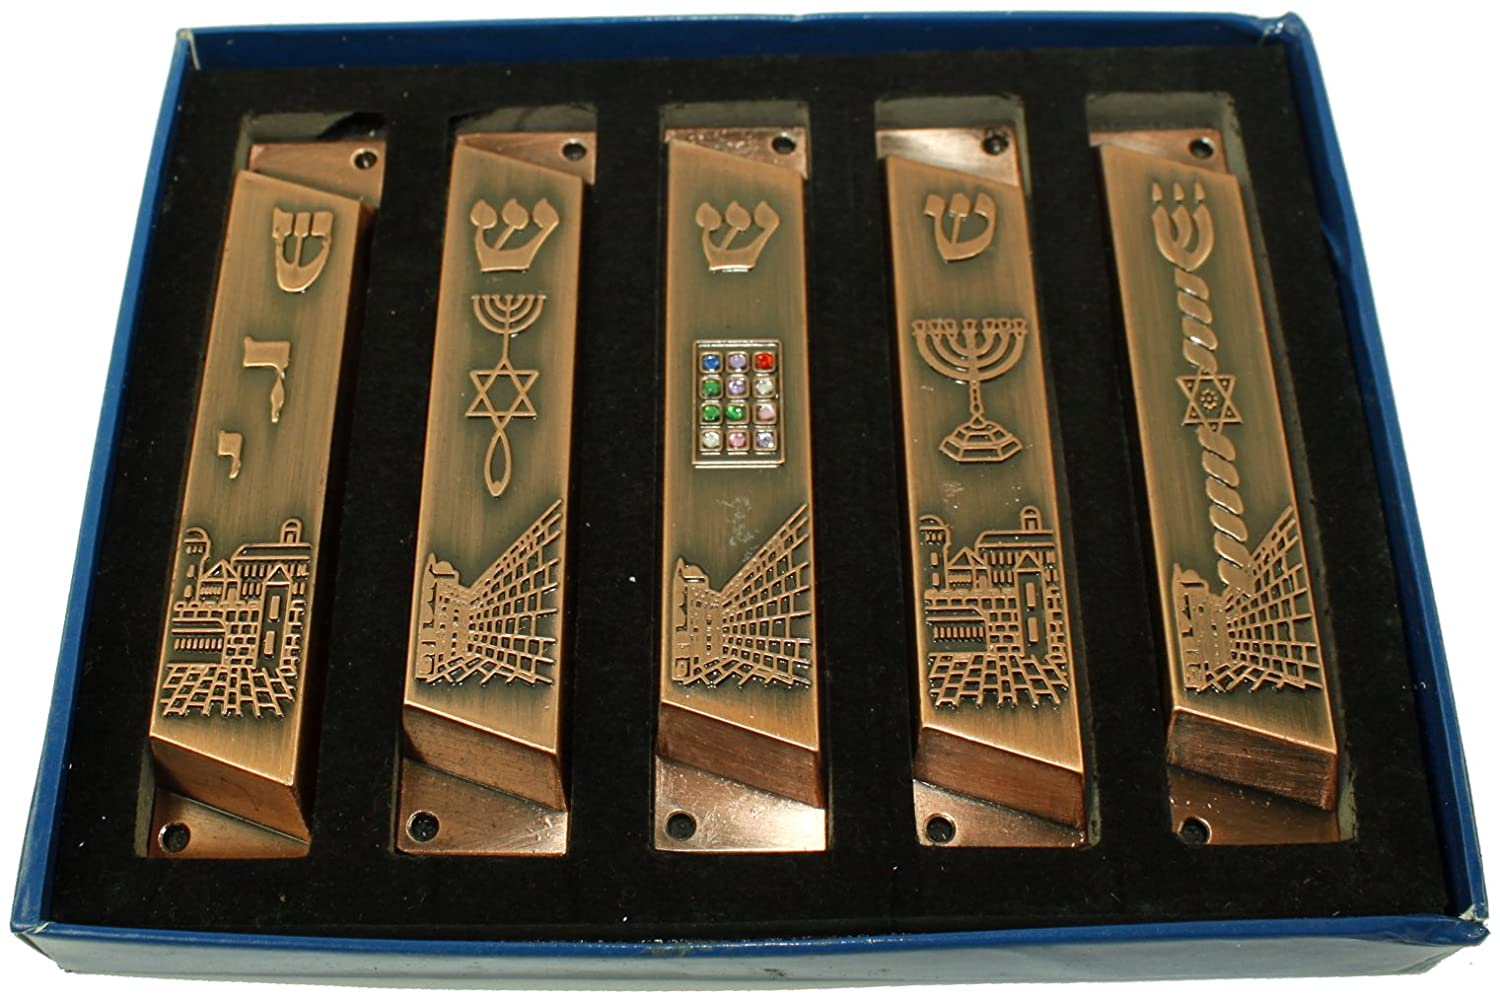 Large Set of 5 Copper Tone with Clean and Smooth Cut and Gold Plated Mezuzahs Symbols with Different enameled Themes Each is About 4 Inches and Comes with Scrolls and Screws for Hanging